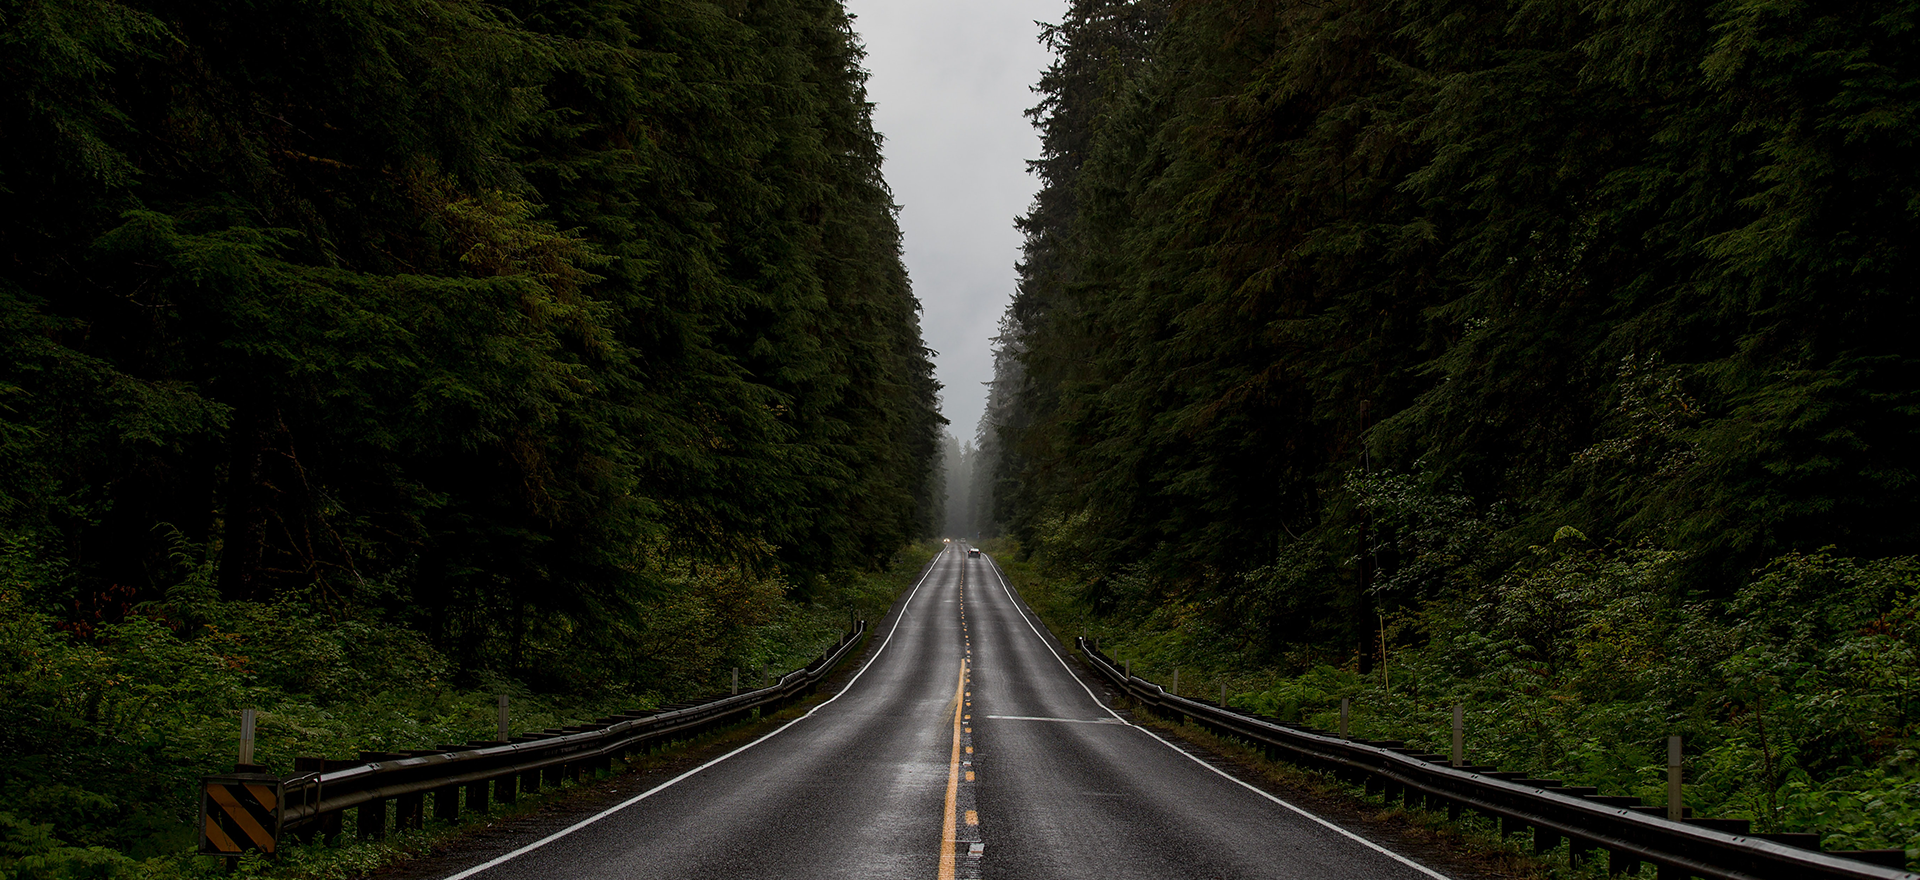 Dark, moody image. A grey road between dark green pine trees with an overcast sky.